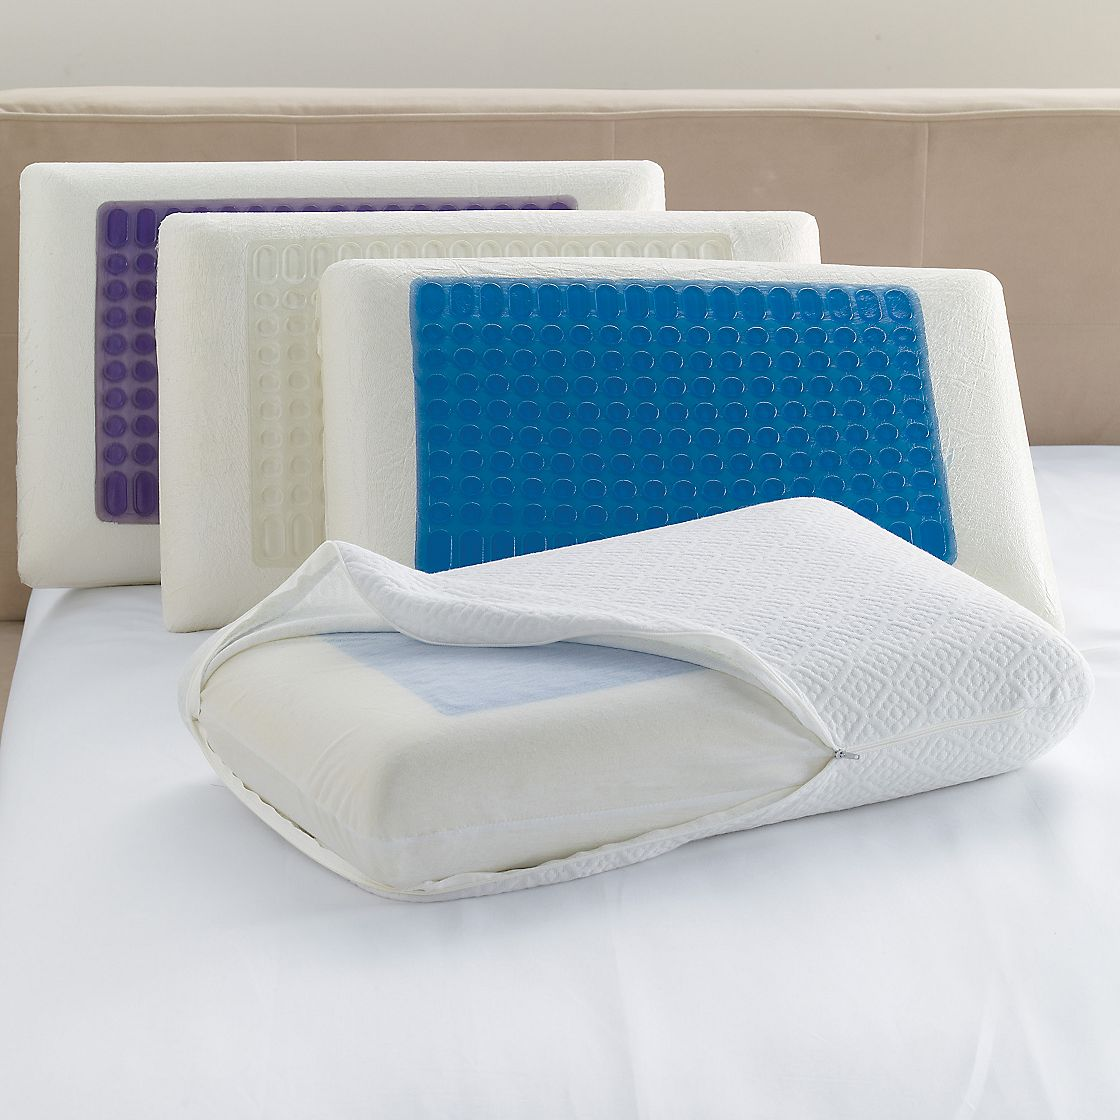 memory foam cooling pillow photo